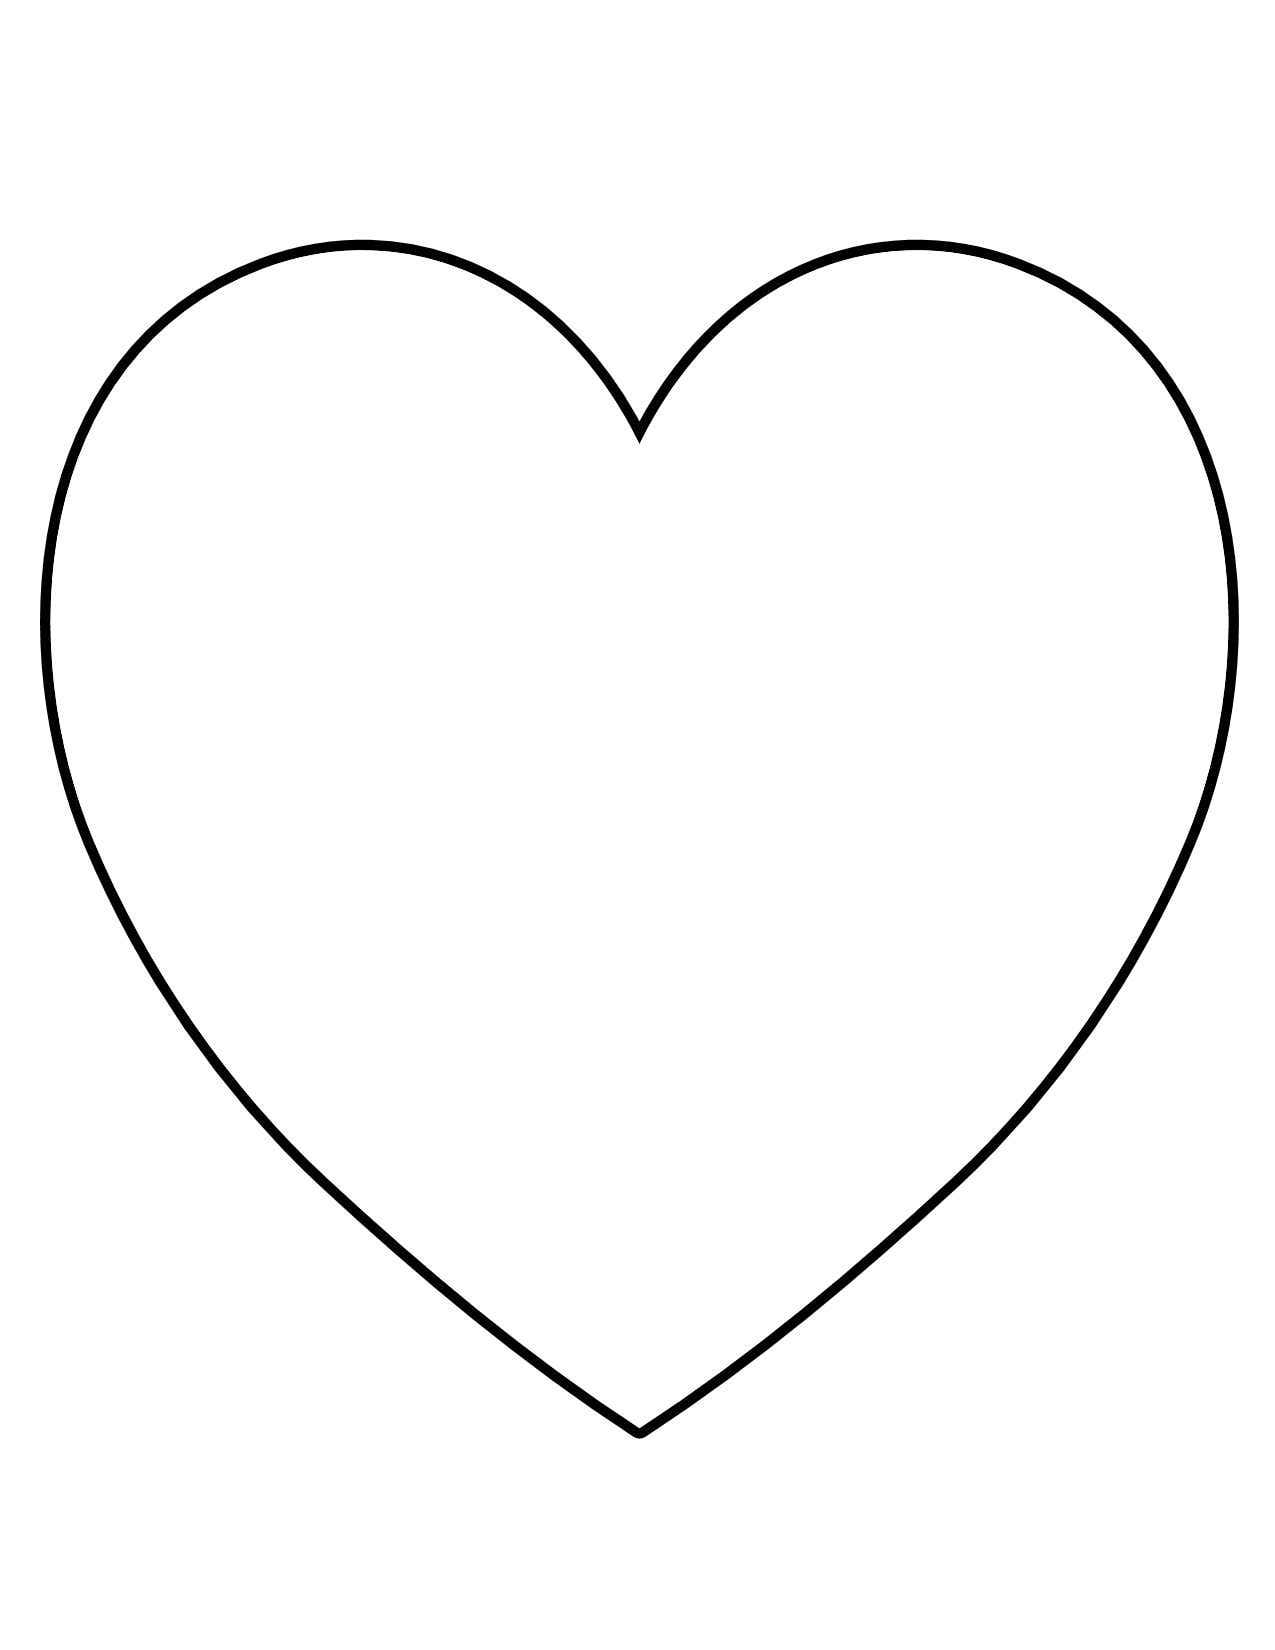 39 printable heart shape template free cliparts that you can download ...